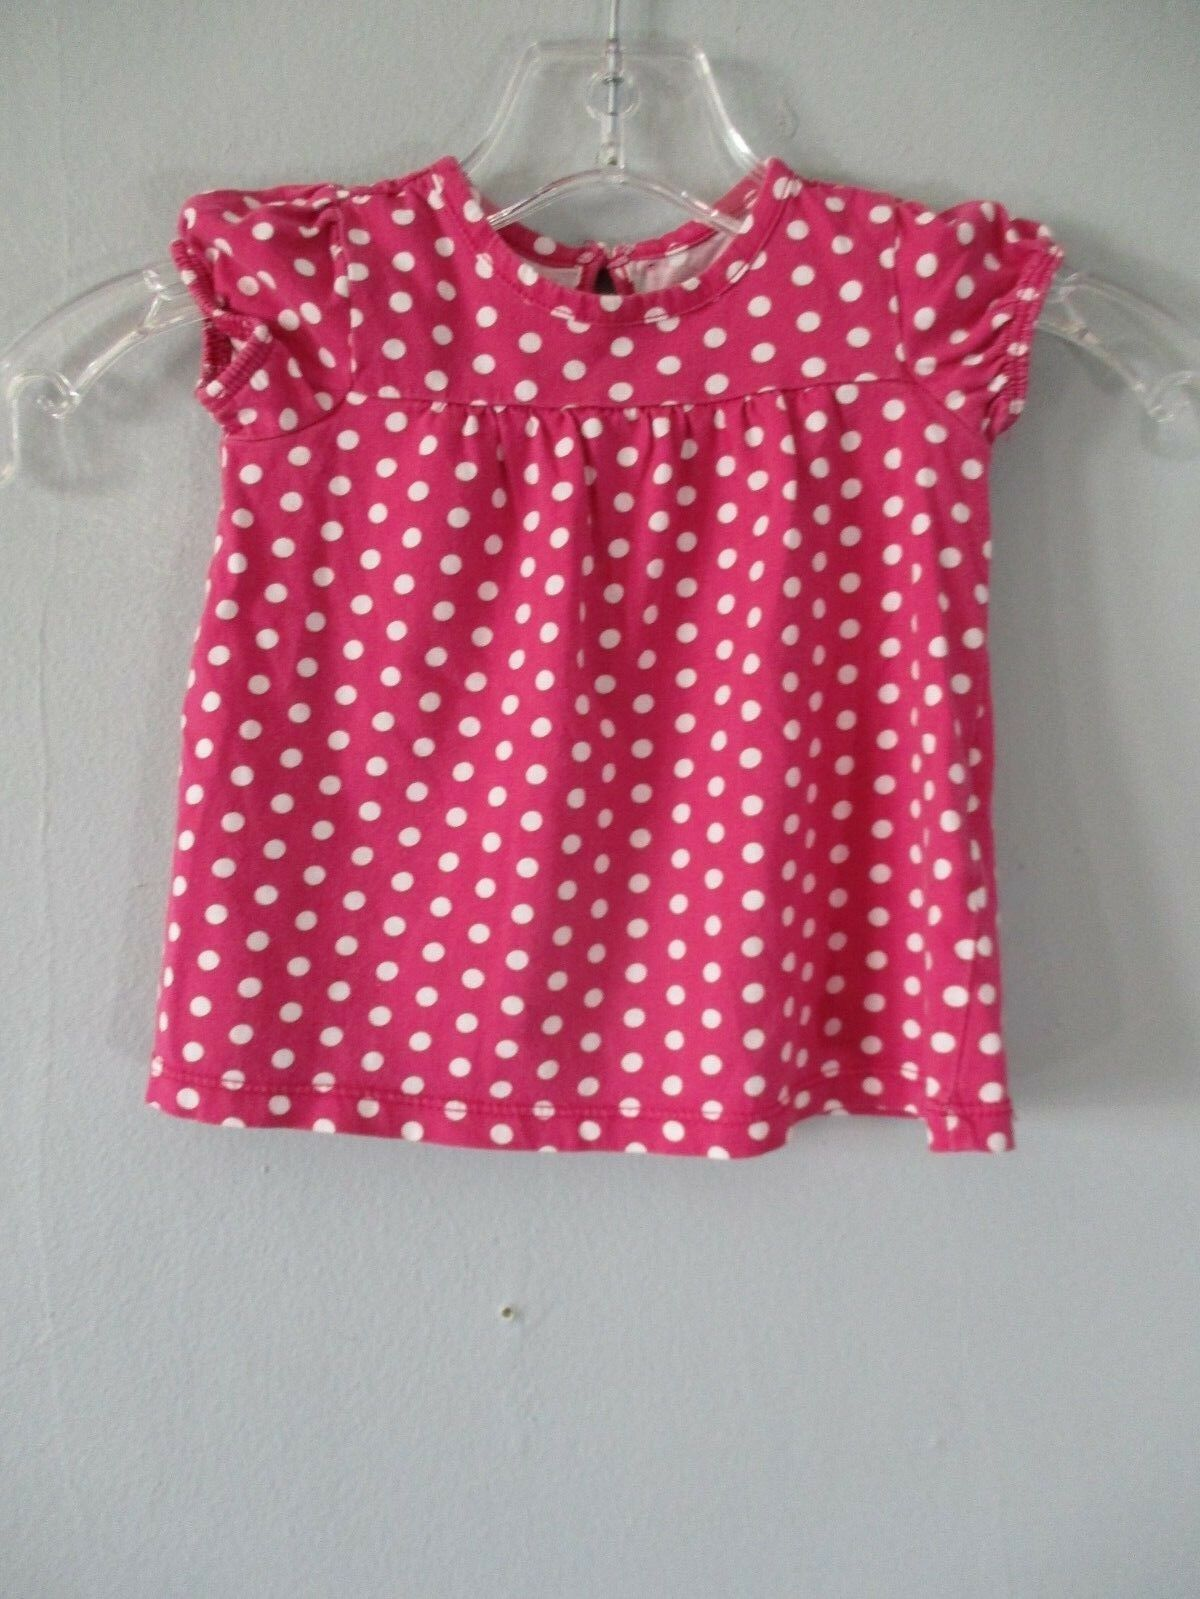 Primary image for Children's Place Baby Girl's Size 0-3 Months 100% Cotton Pink Polka Dotted Dress